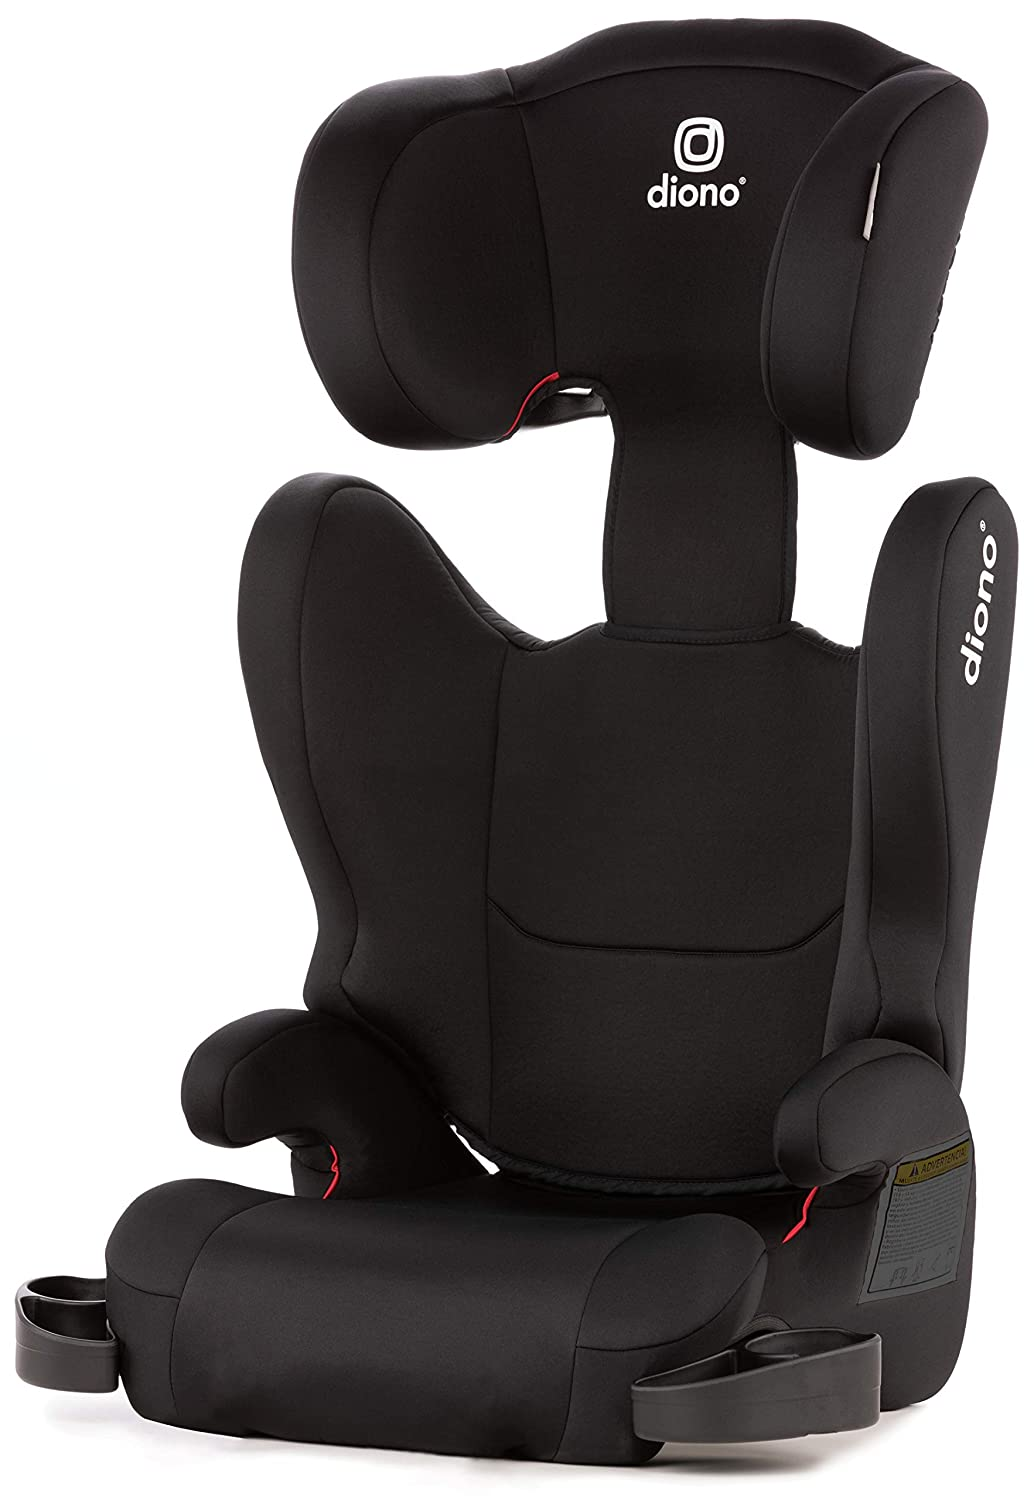 Diono Cambria 2 High-Back Childrens Booster Seat 18-54 kg Black 6 Position Head-Support Group 2//3